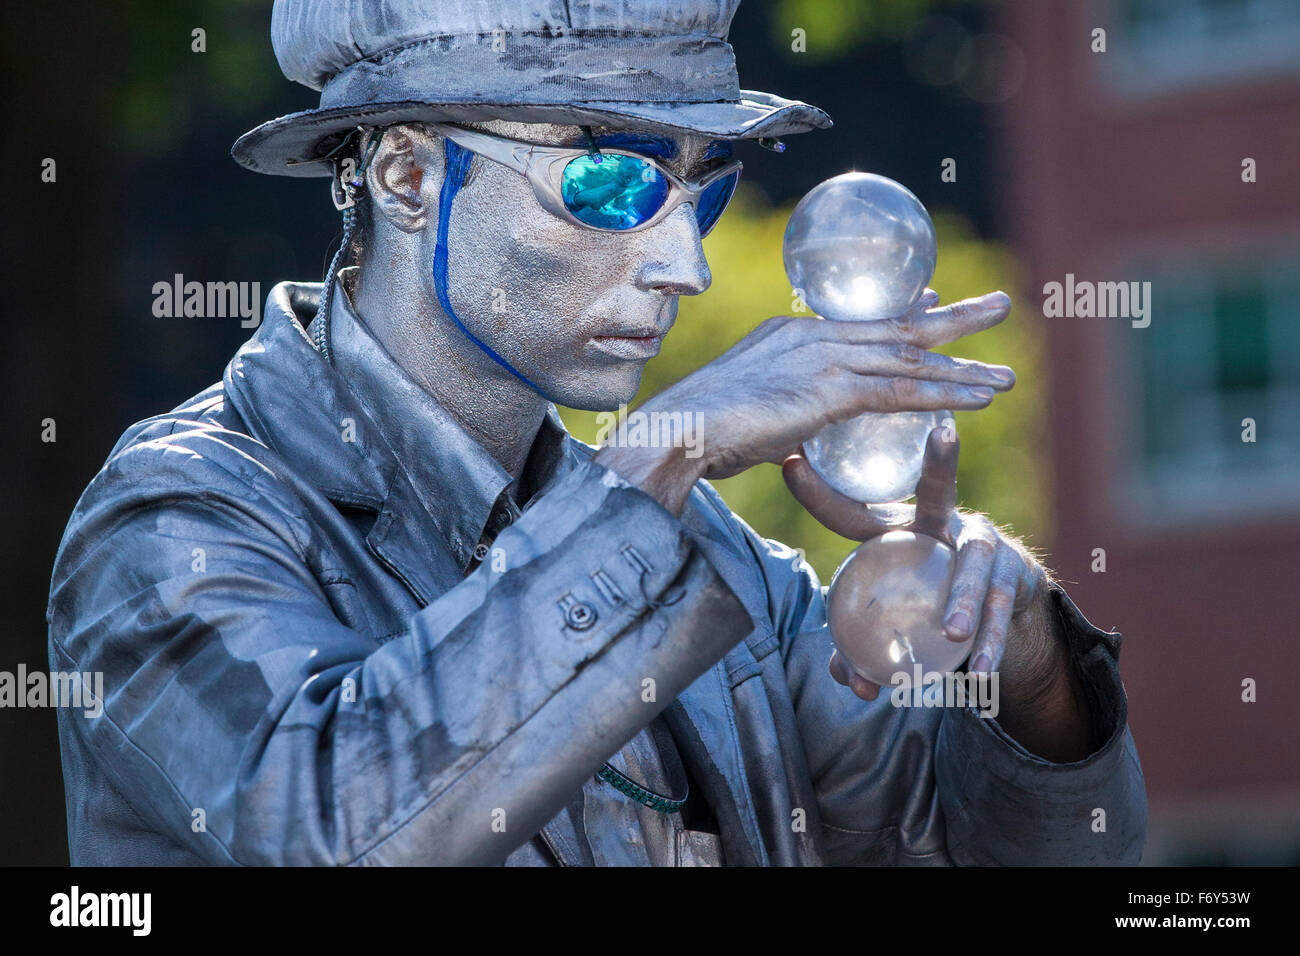 A street performer gazes at large glass marbles during his act at the Saturday Market in Portland, Oregon. - Stock Image